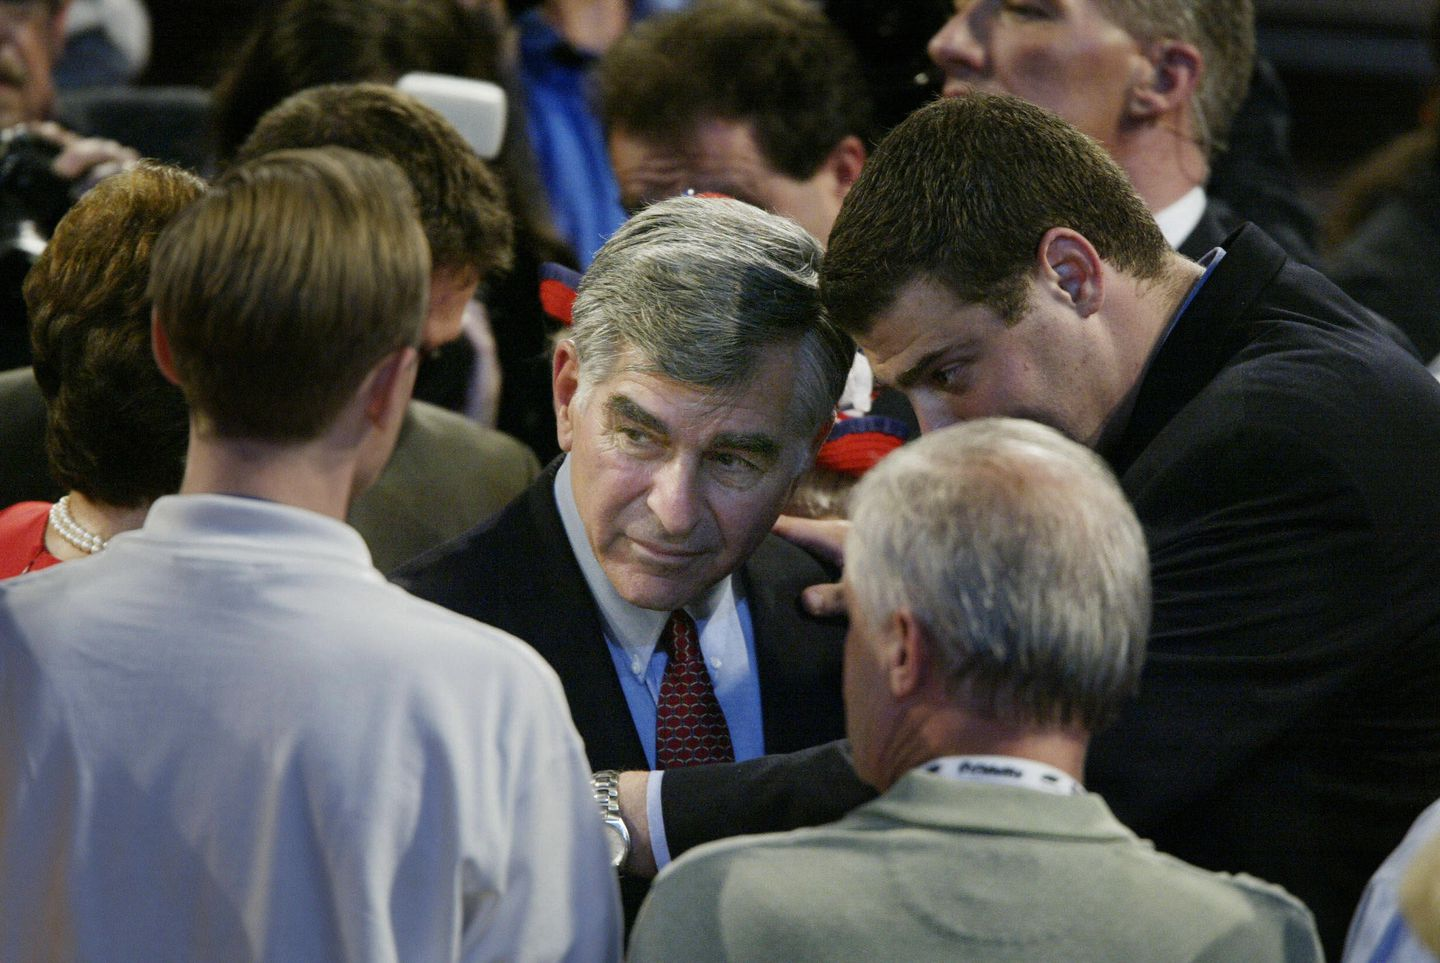 Will 2020 shake out like earlier big Democratic fields in 1988 and 2004? Here, 1988 nominee Michael Dukakis appears at the 2004  convention.